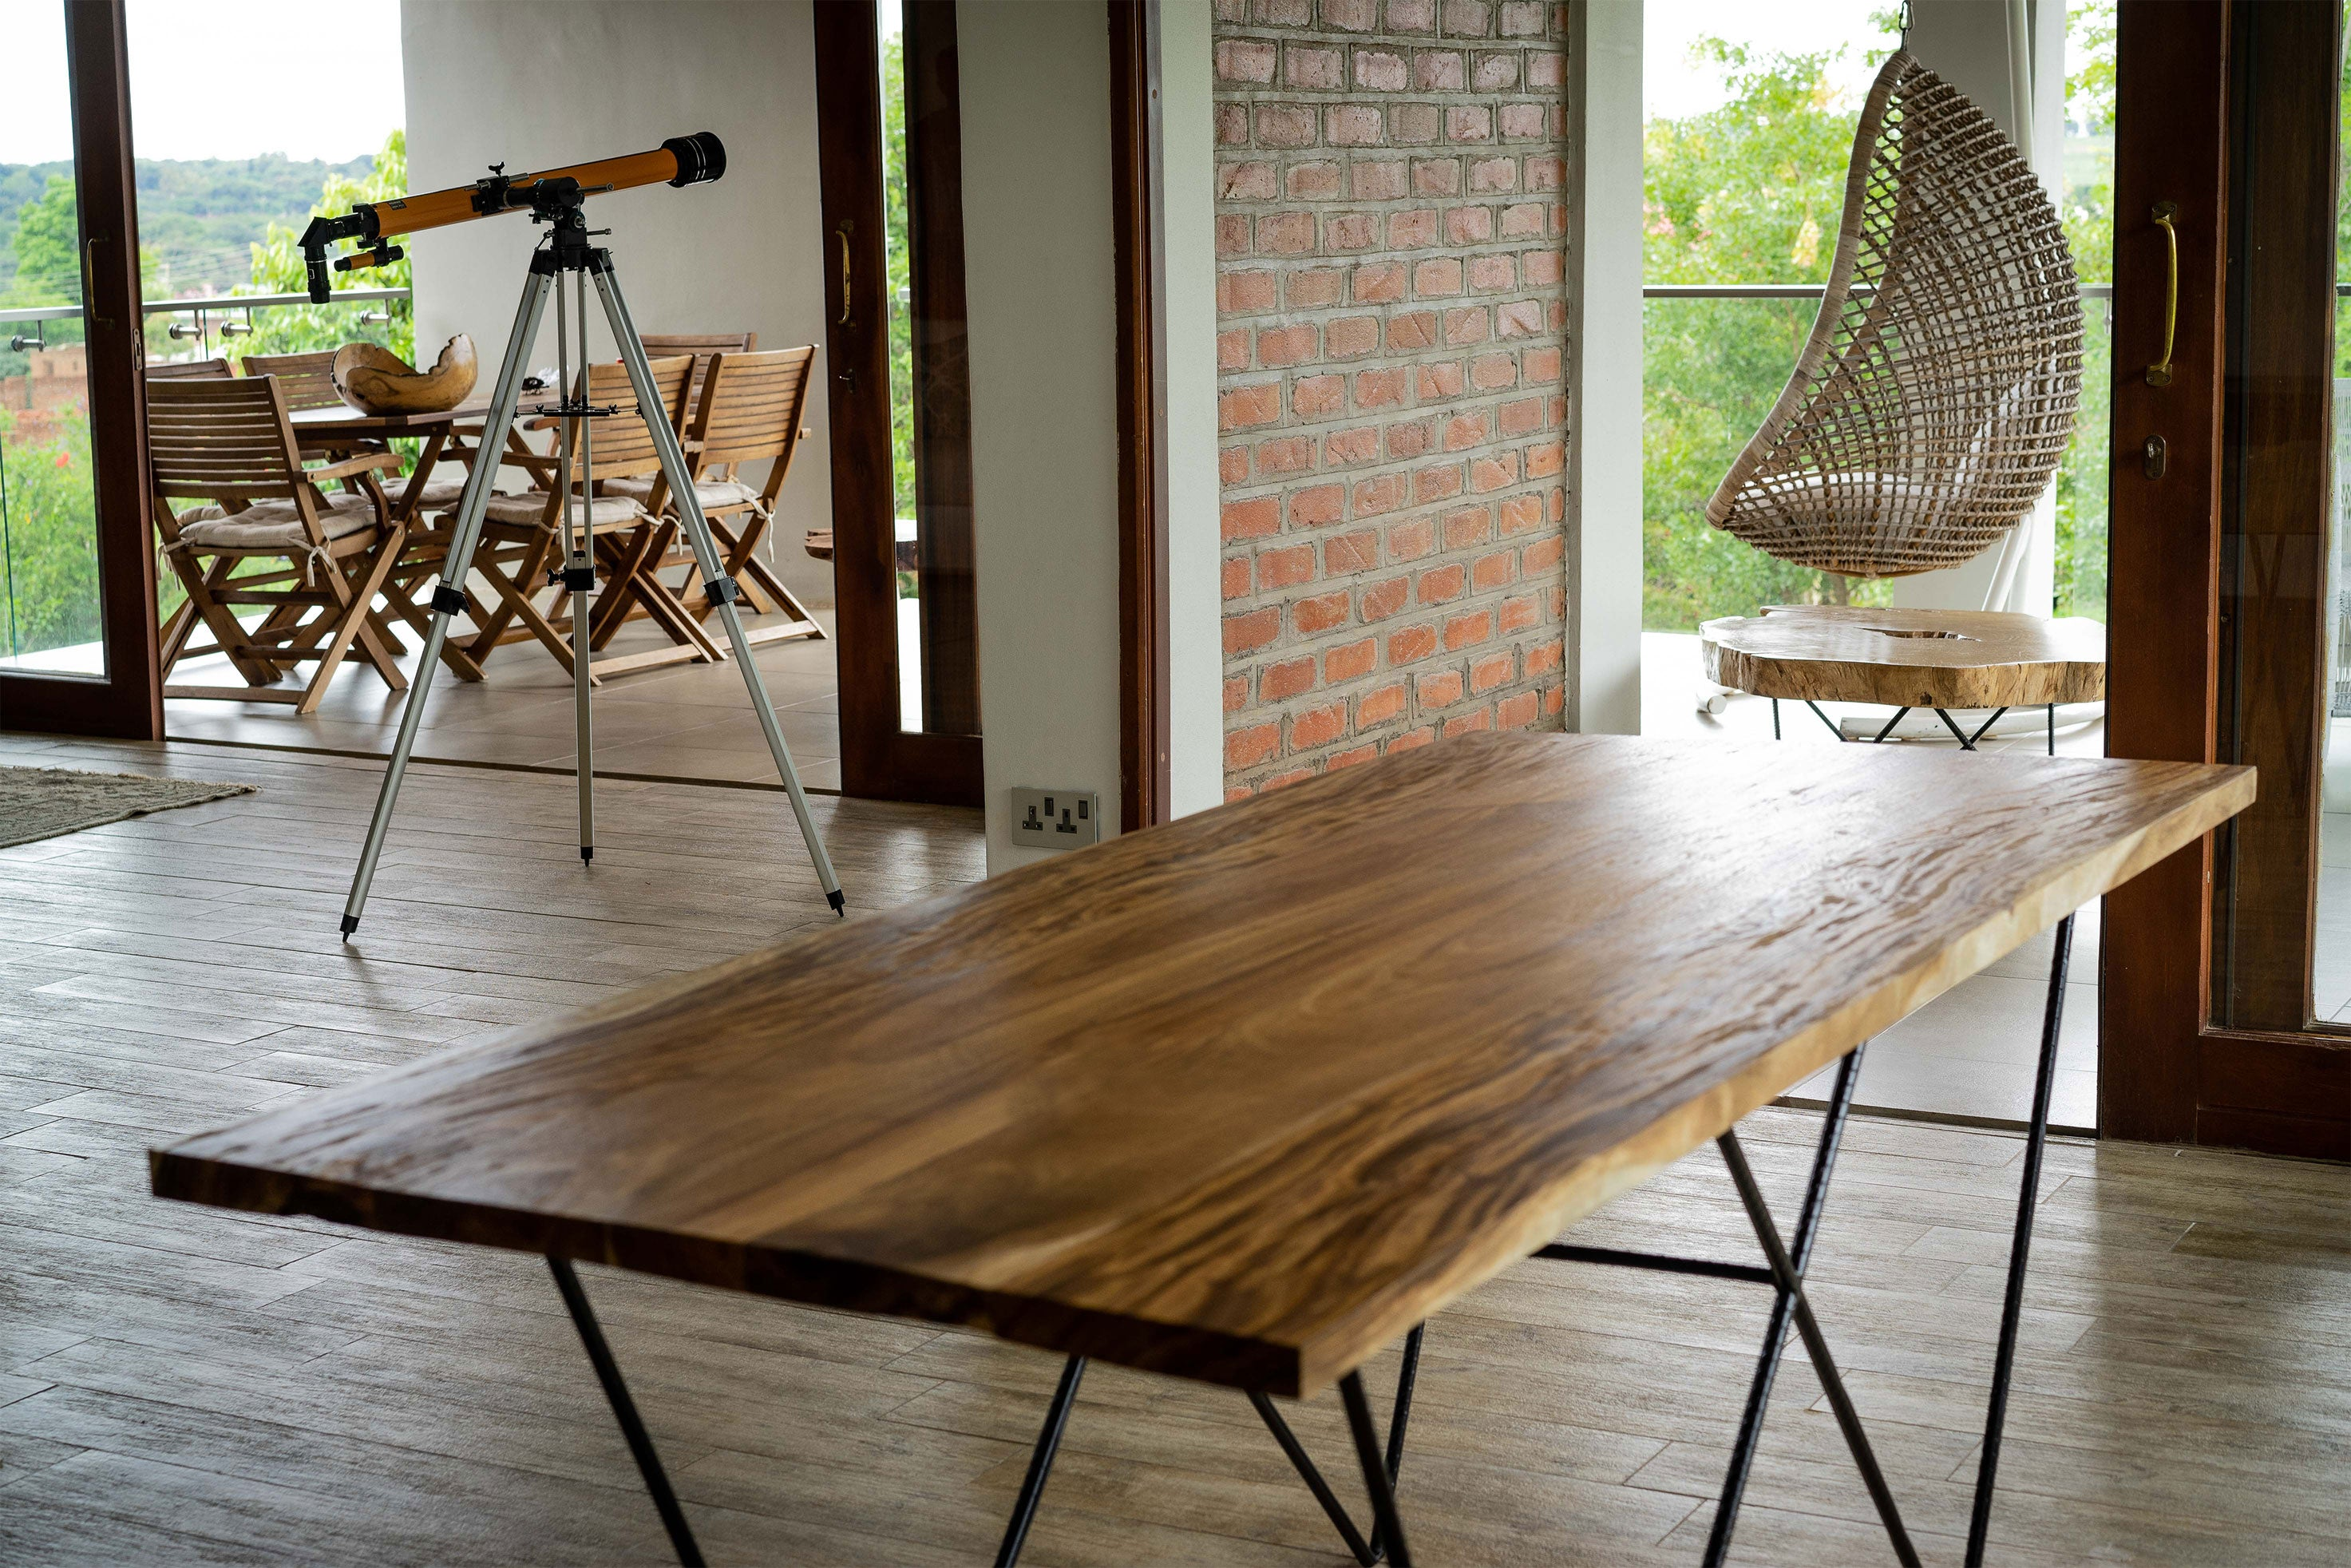 Straight Edge Wood Dining Table - Mid Century Modern - Handcrafted Furniture